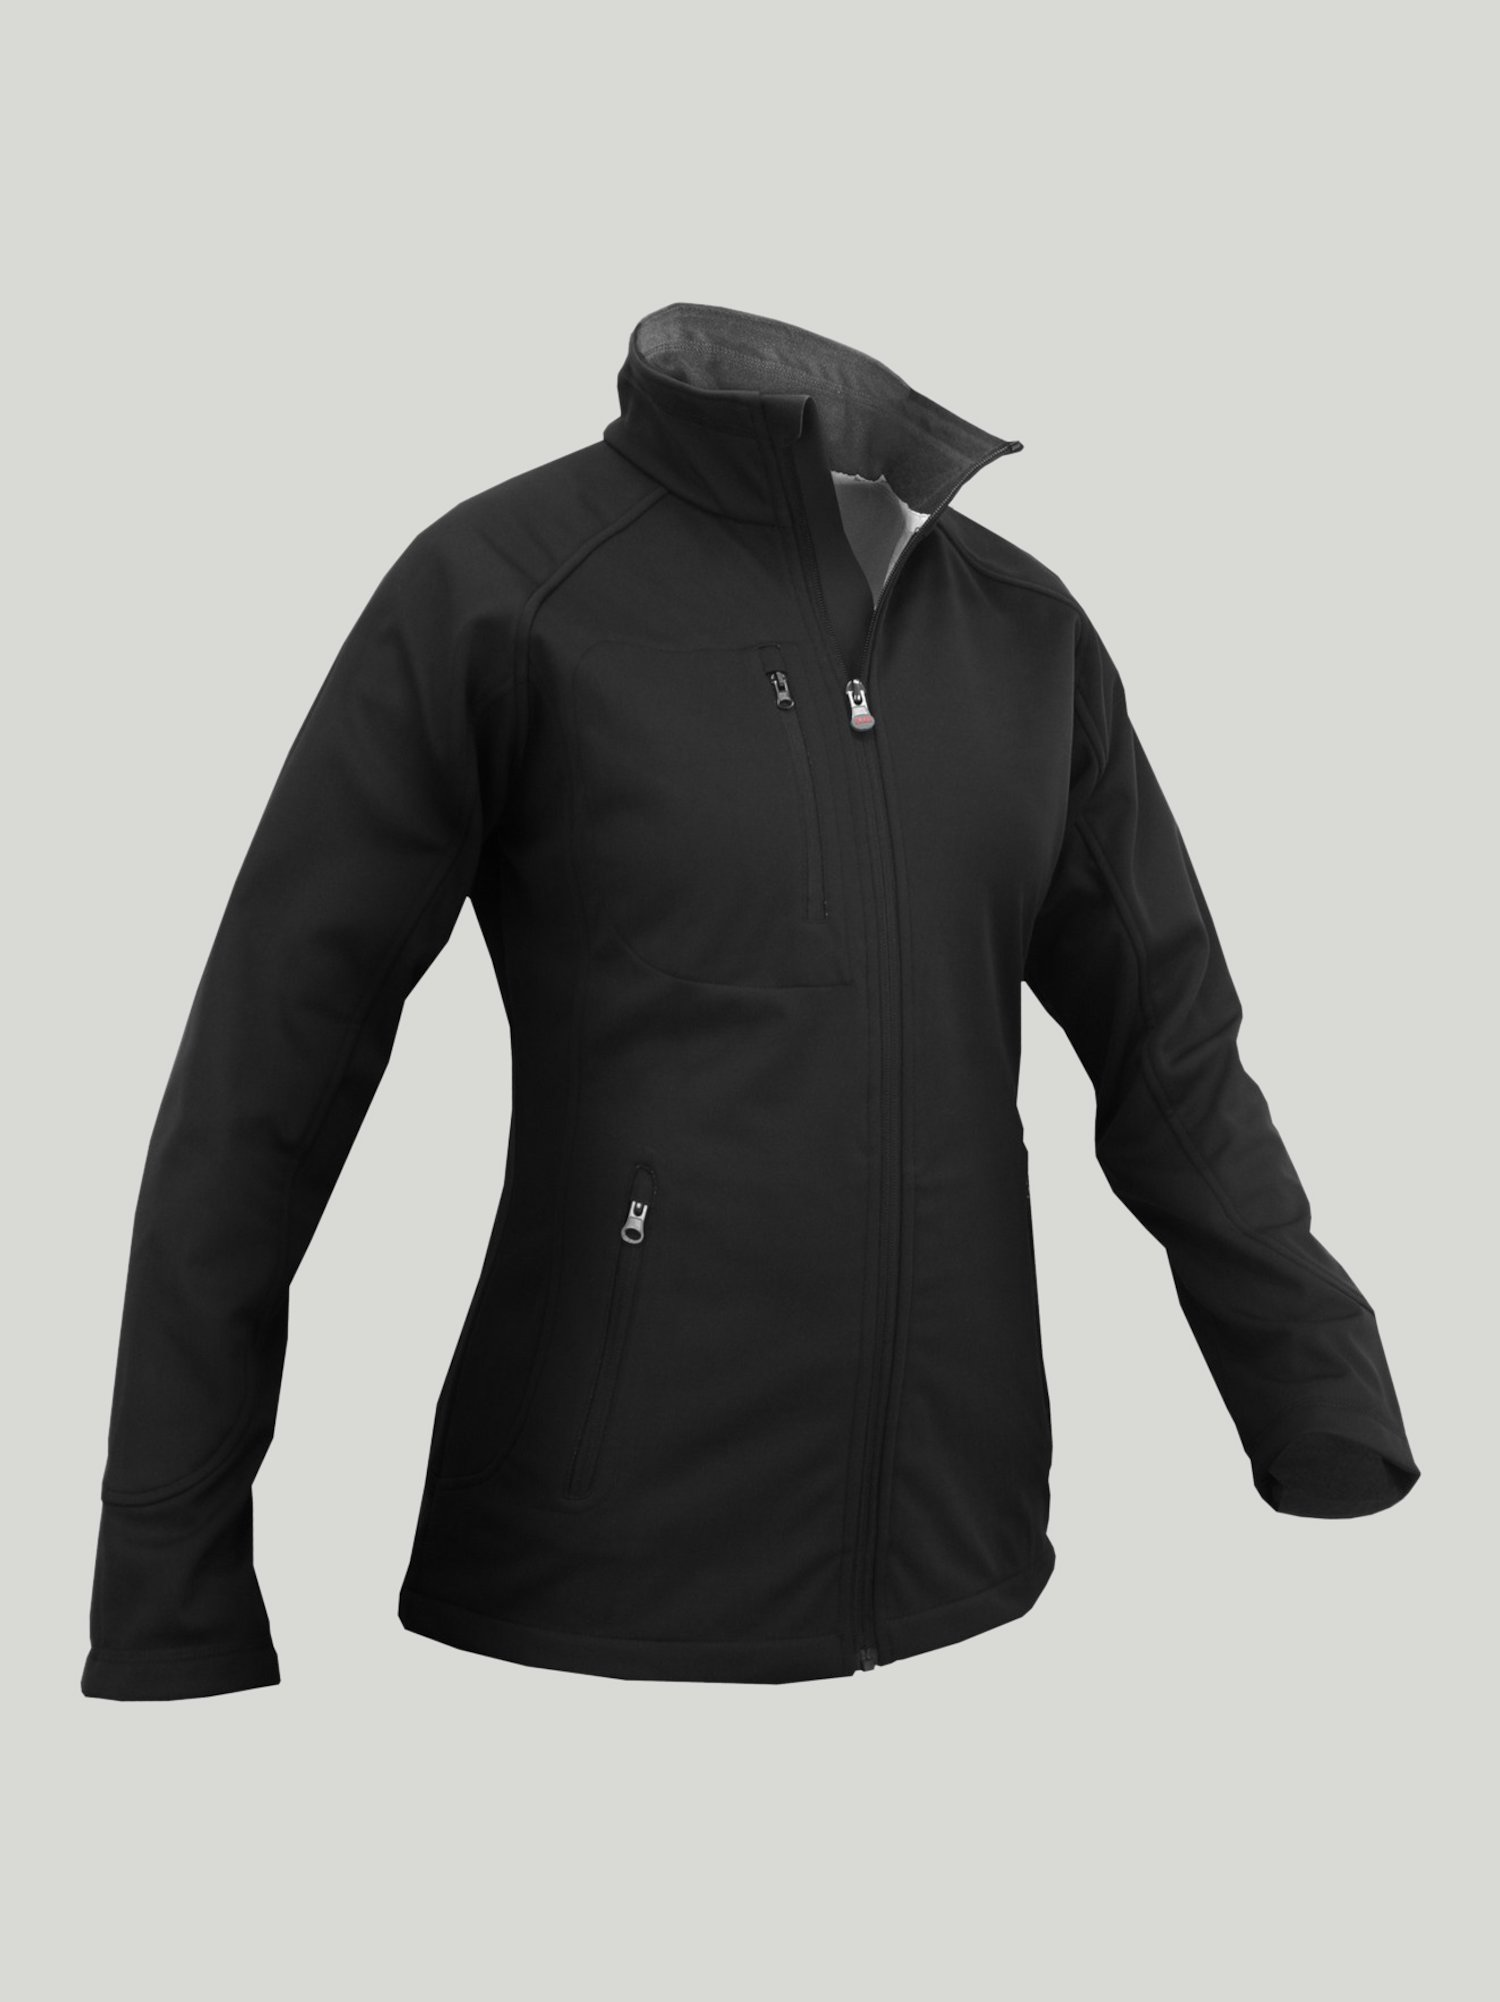 Oxbow jacket - Black